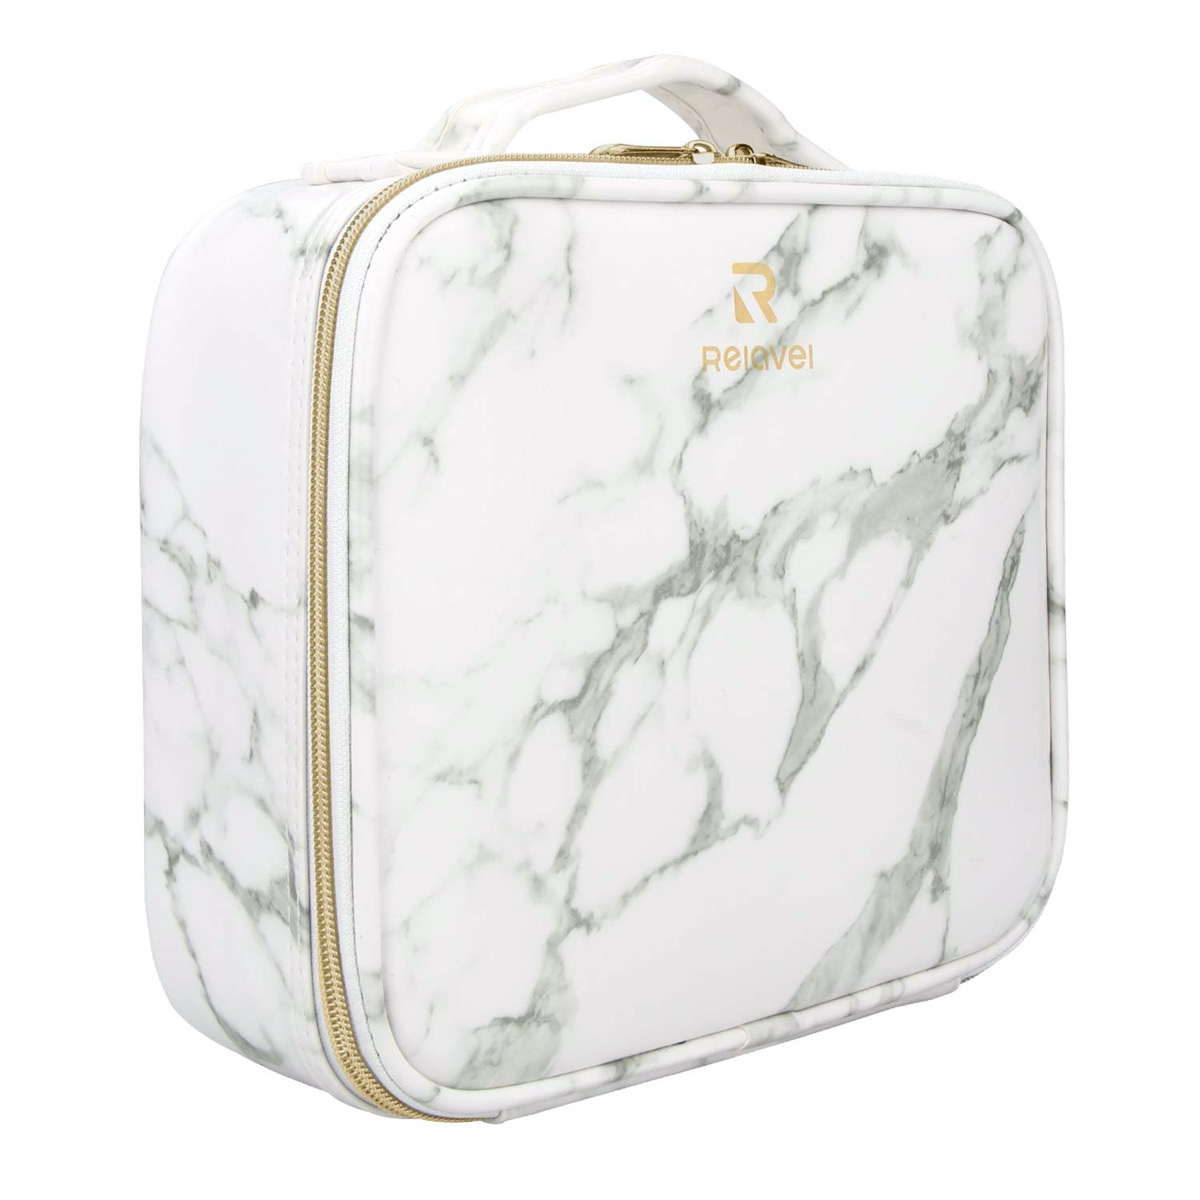 white and gray marble-look makeup case